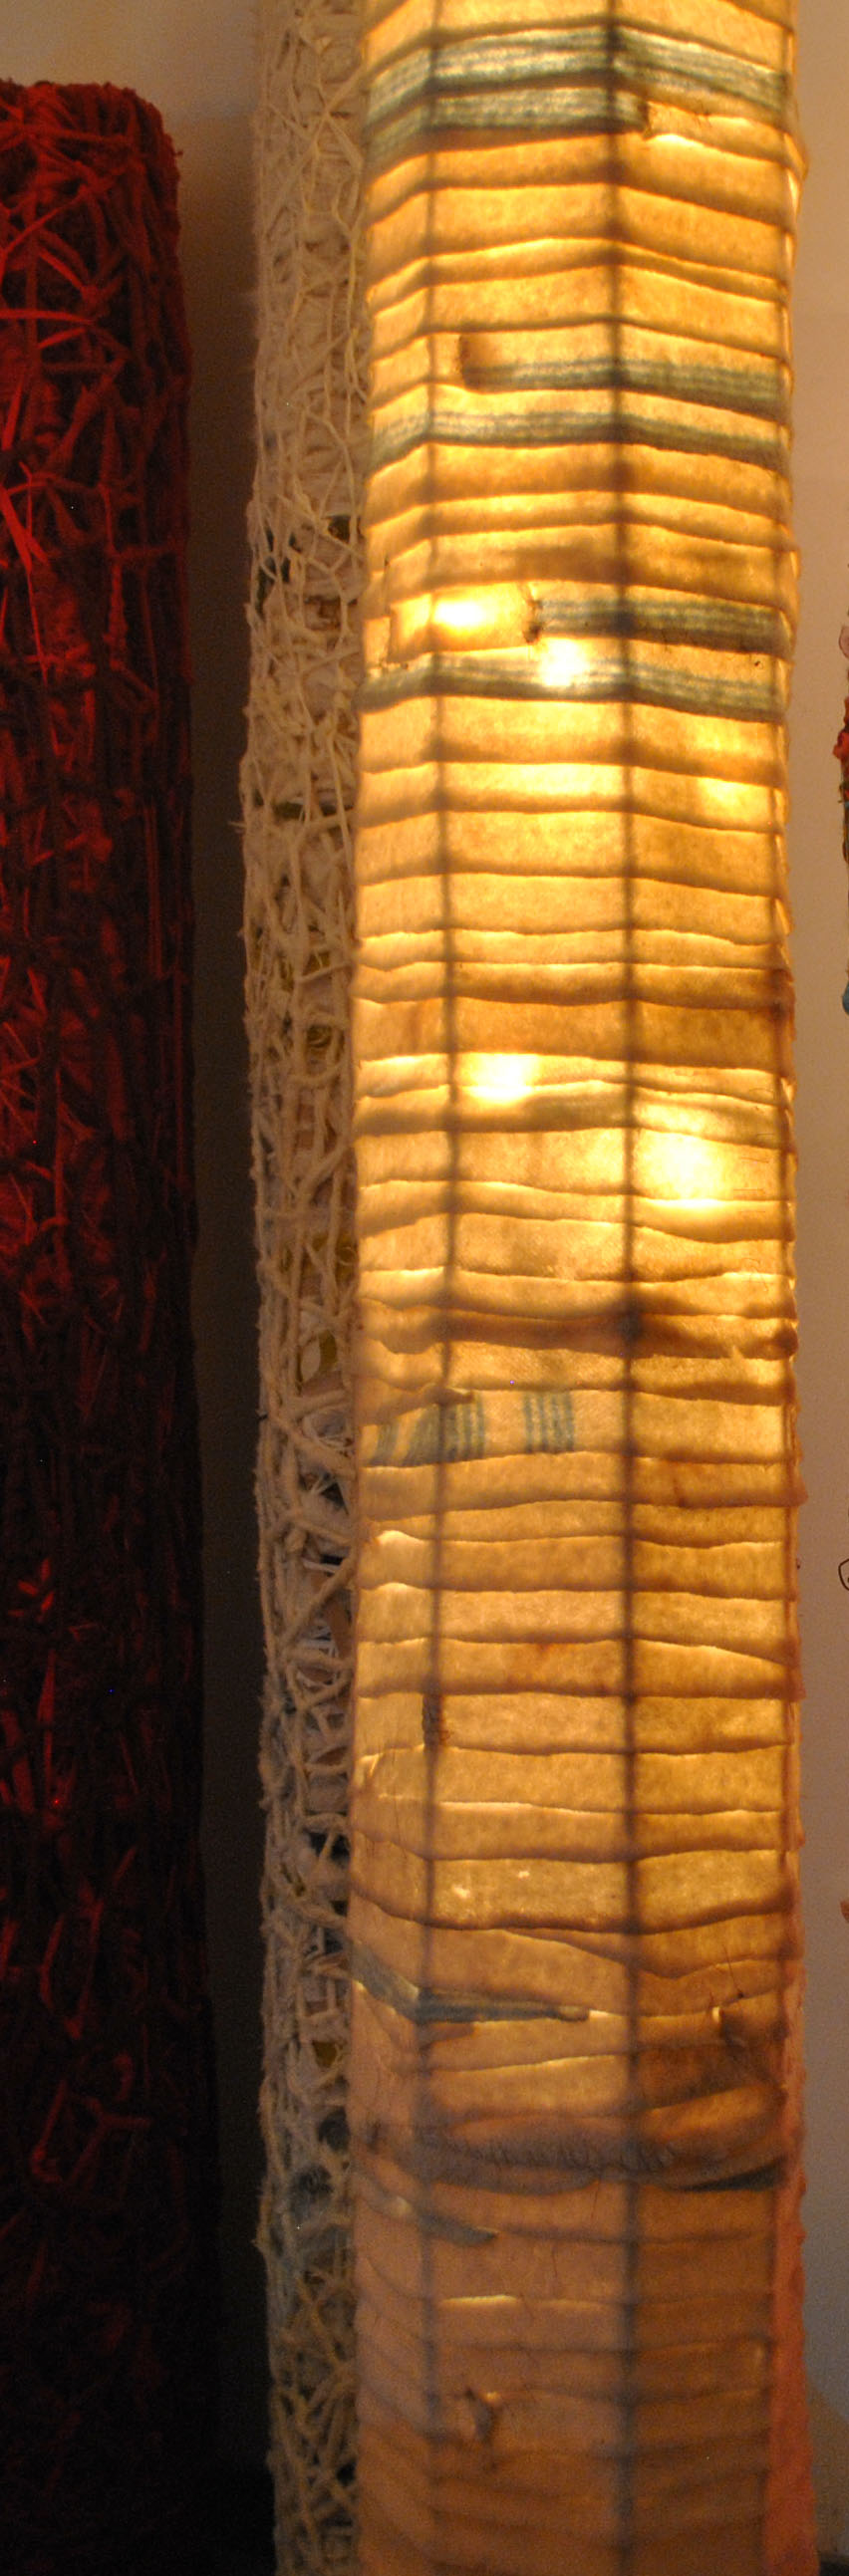 Blanket Light Column